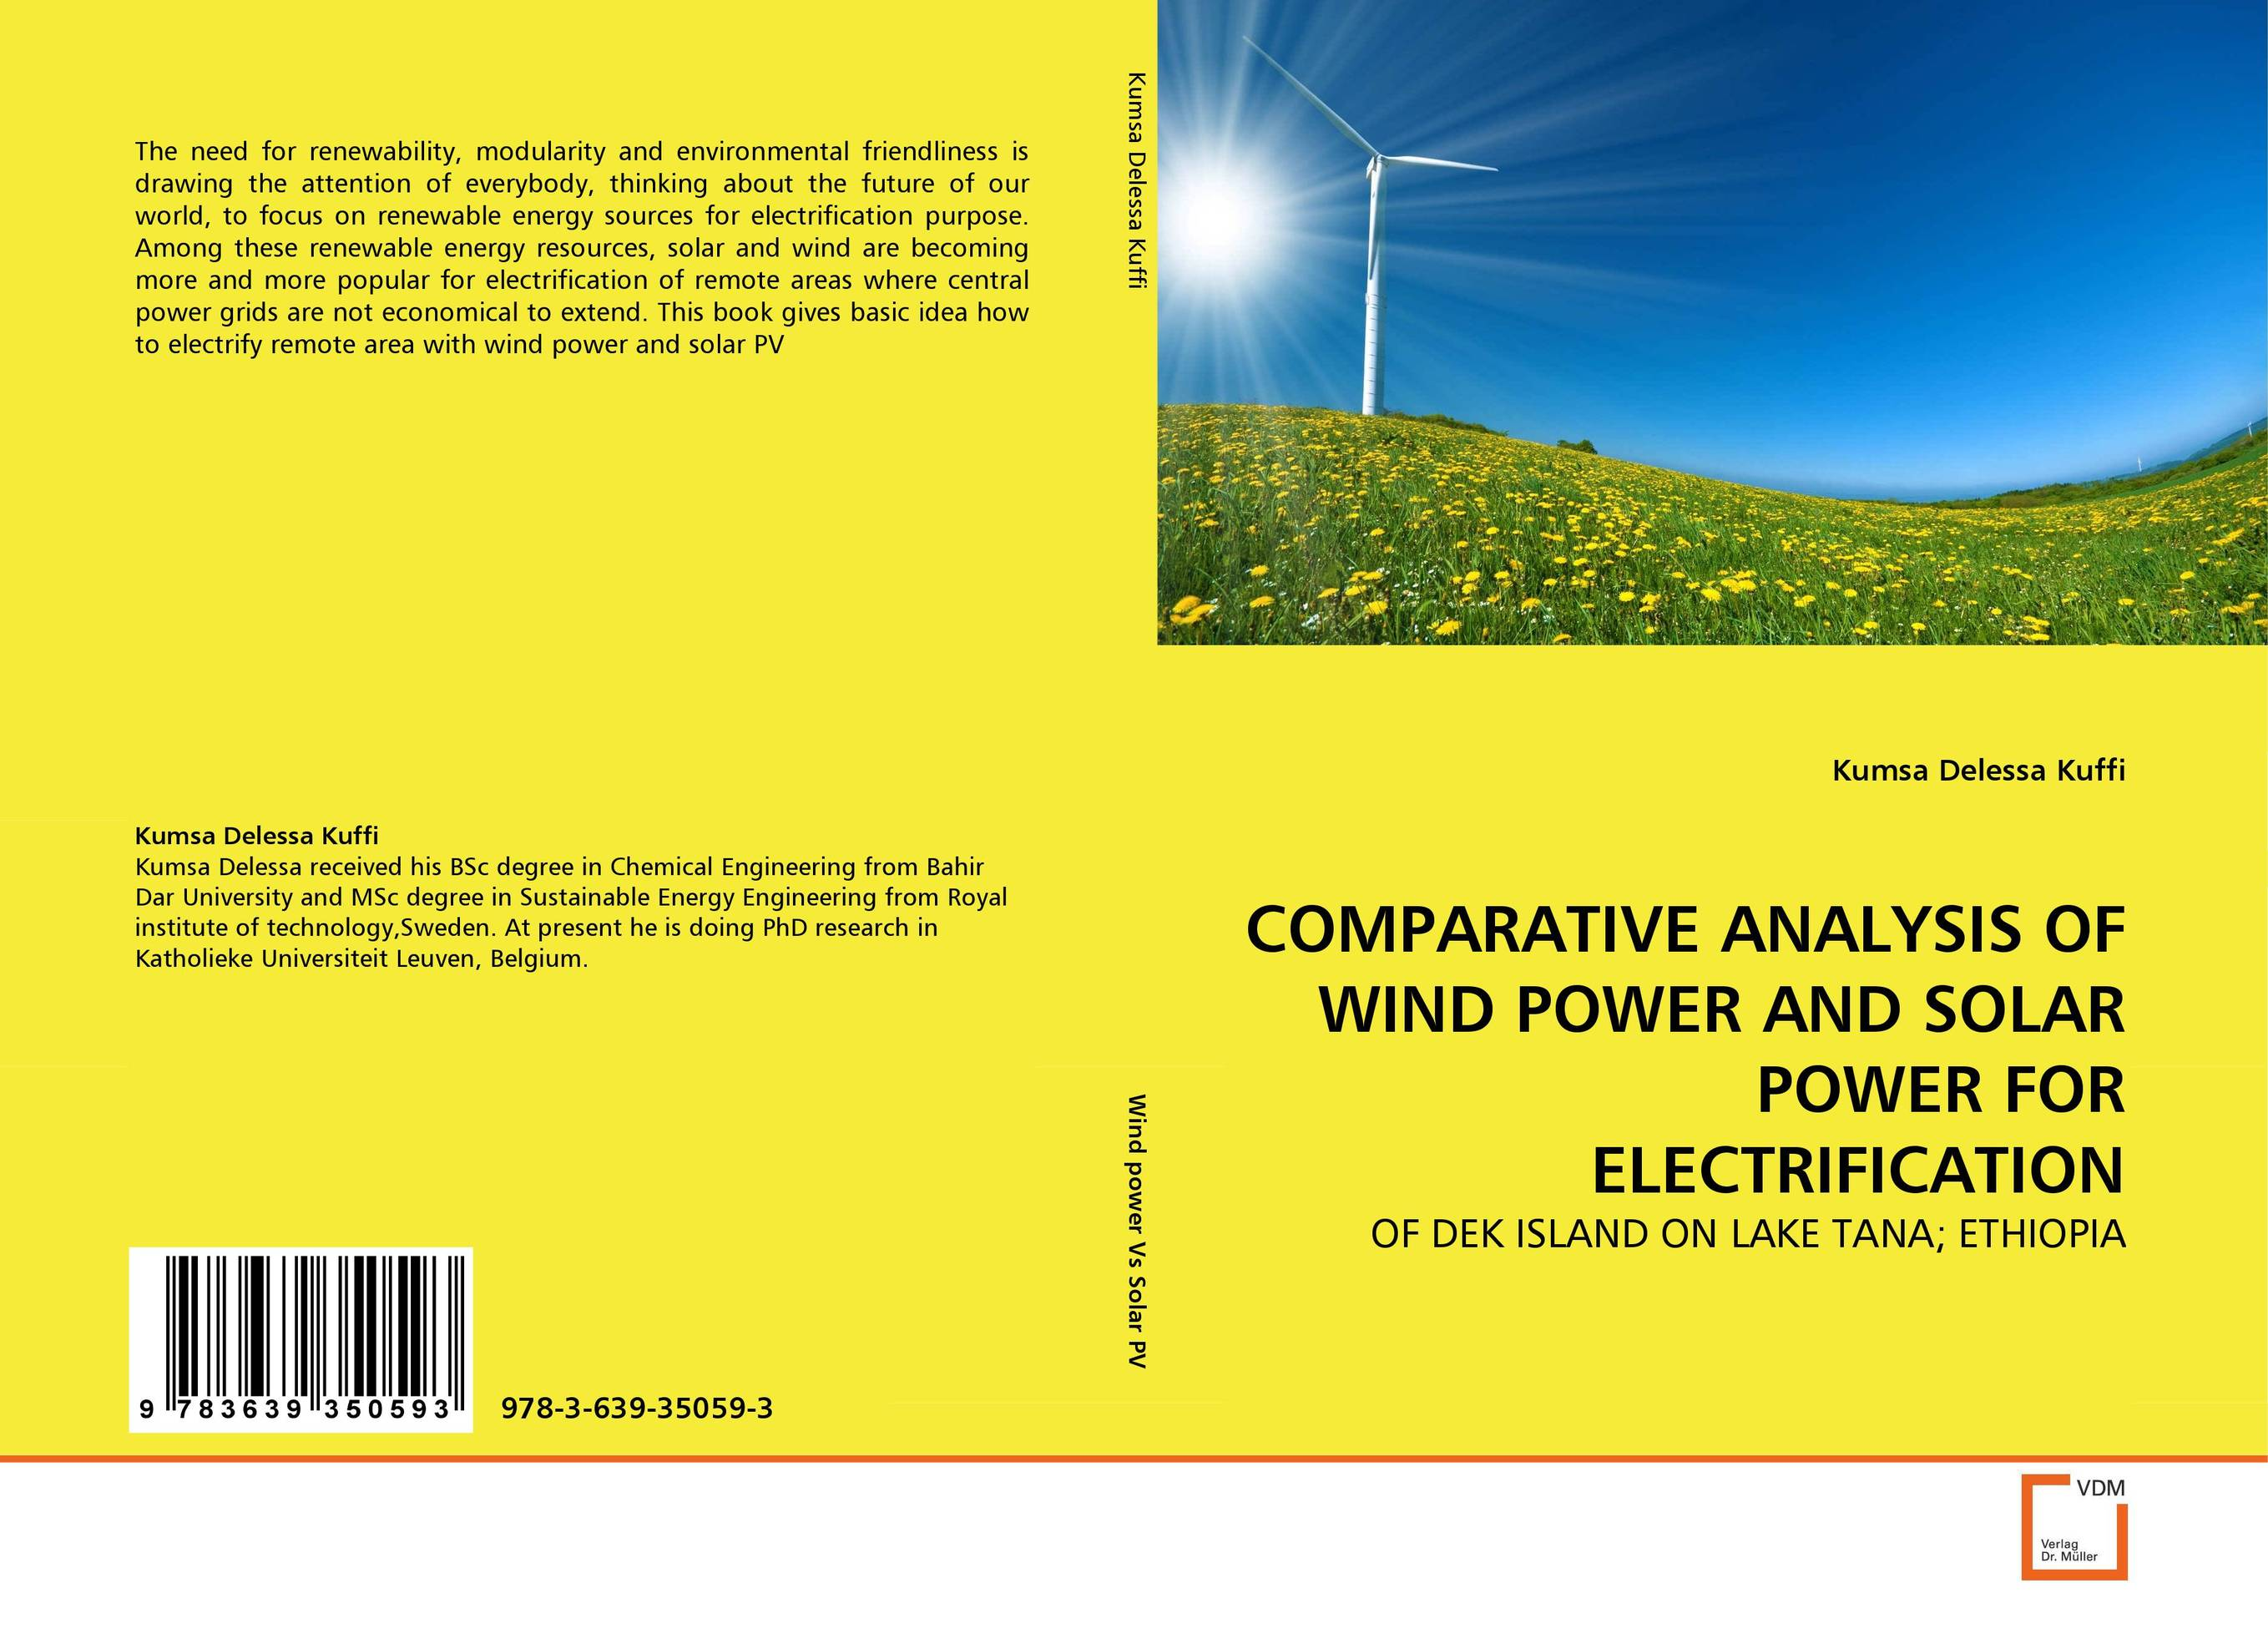 COMPARATIVE ANALYSIS OF WIND POWER AND SOLAR POWER FOR ELECTRIFICATION grid impact of renewable energy on isolated and remote power system